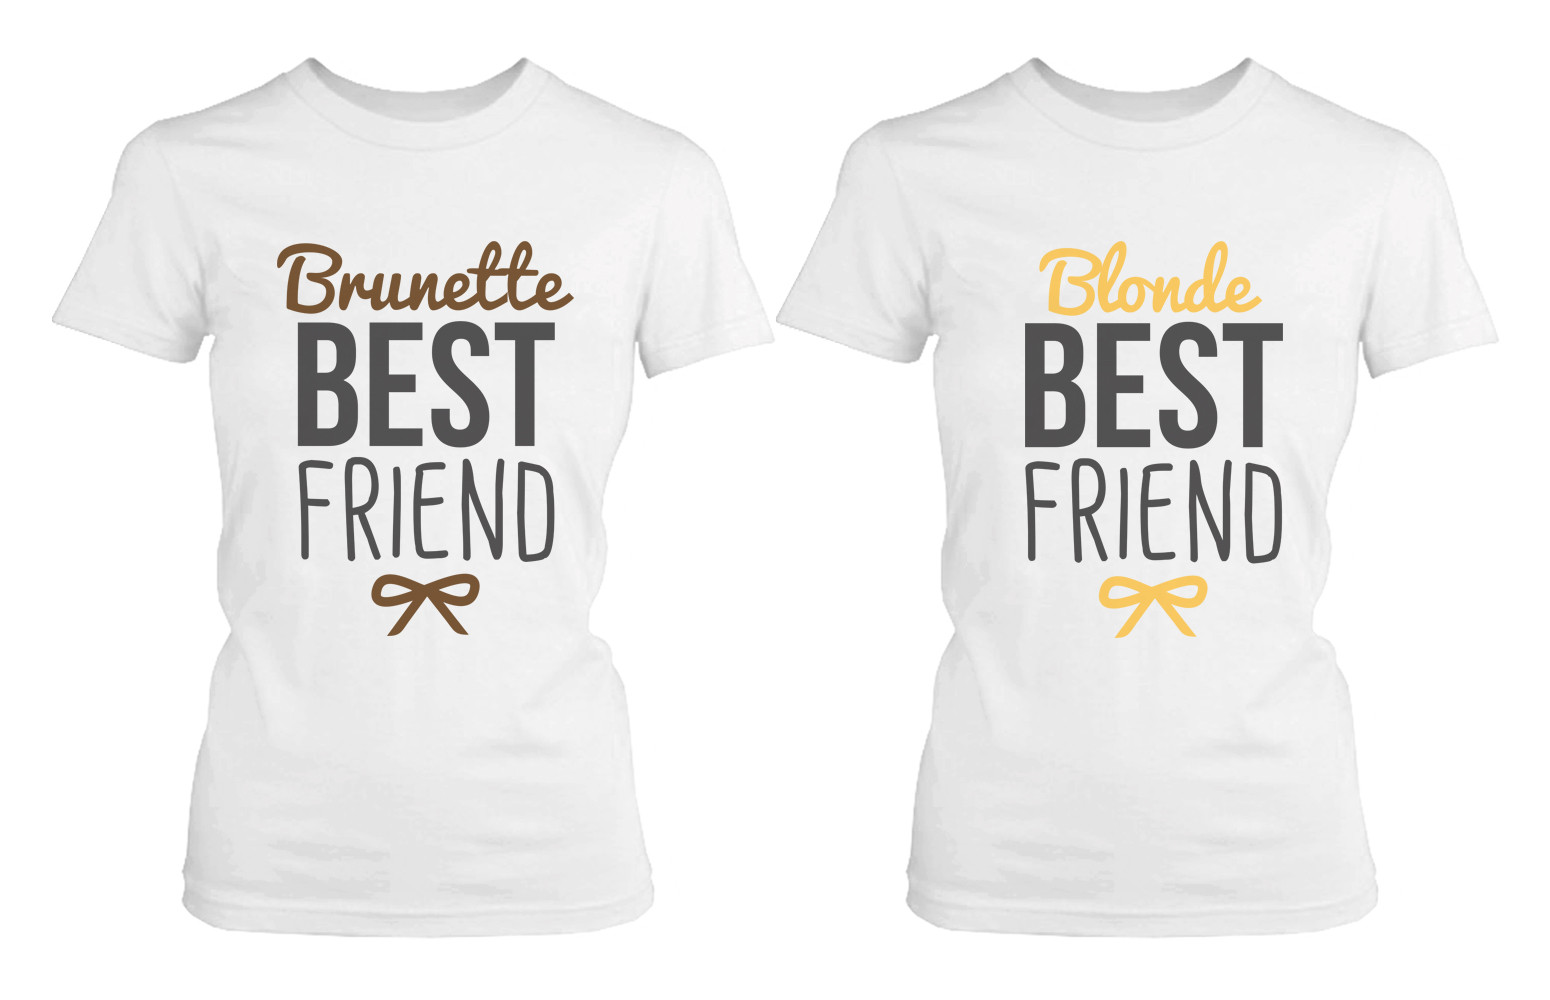 Blonde and Brunette Matching Best Friend Shirts